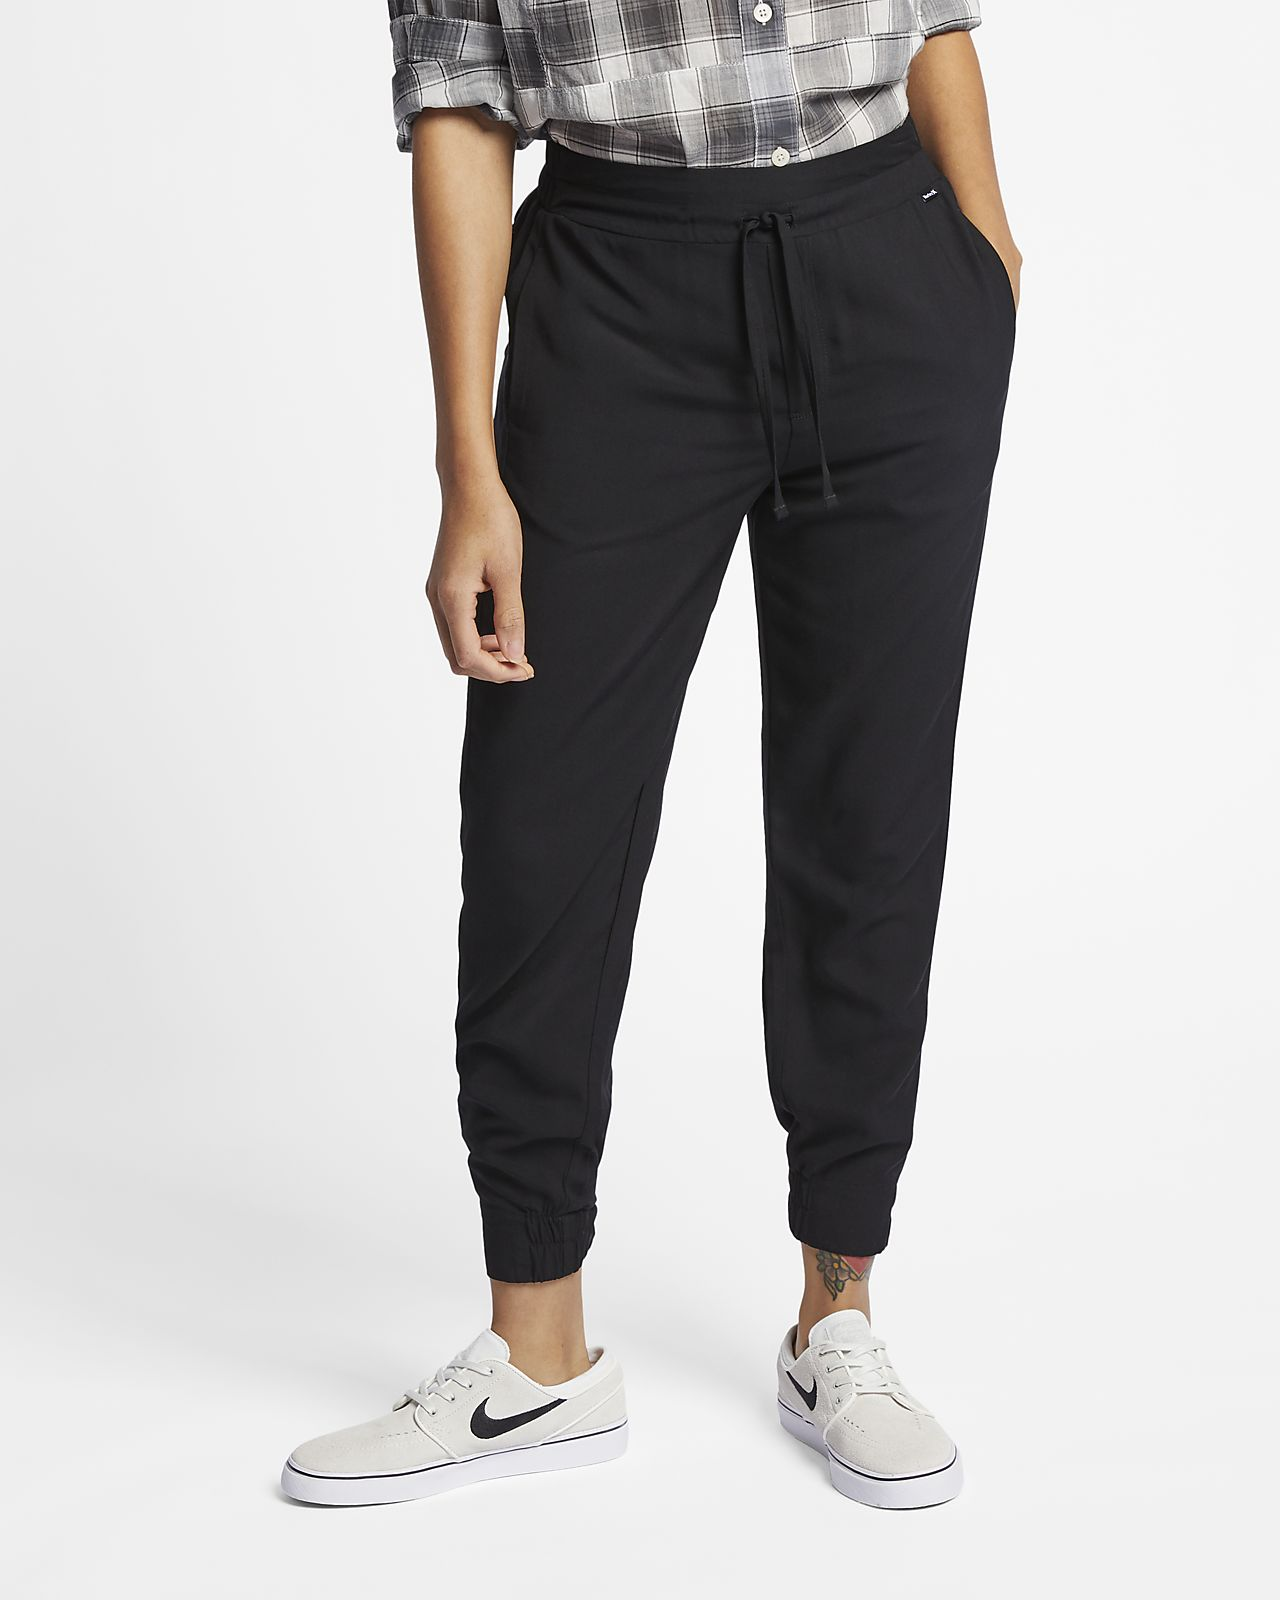 Hurley Beach Women's Trousers